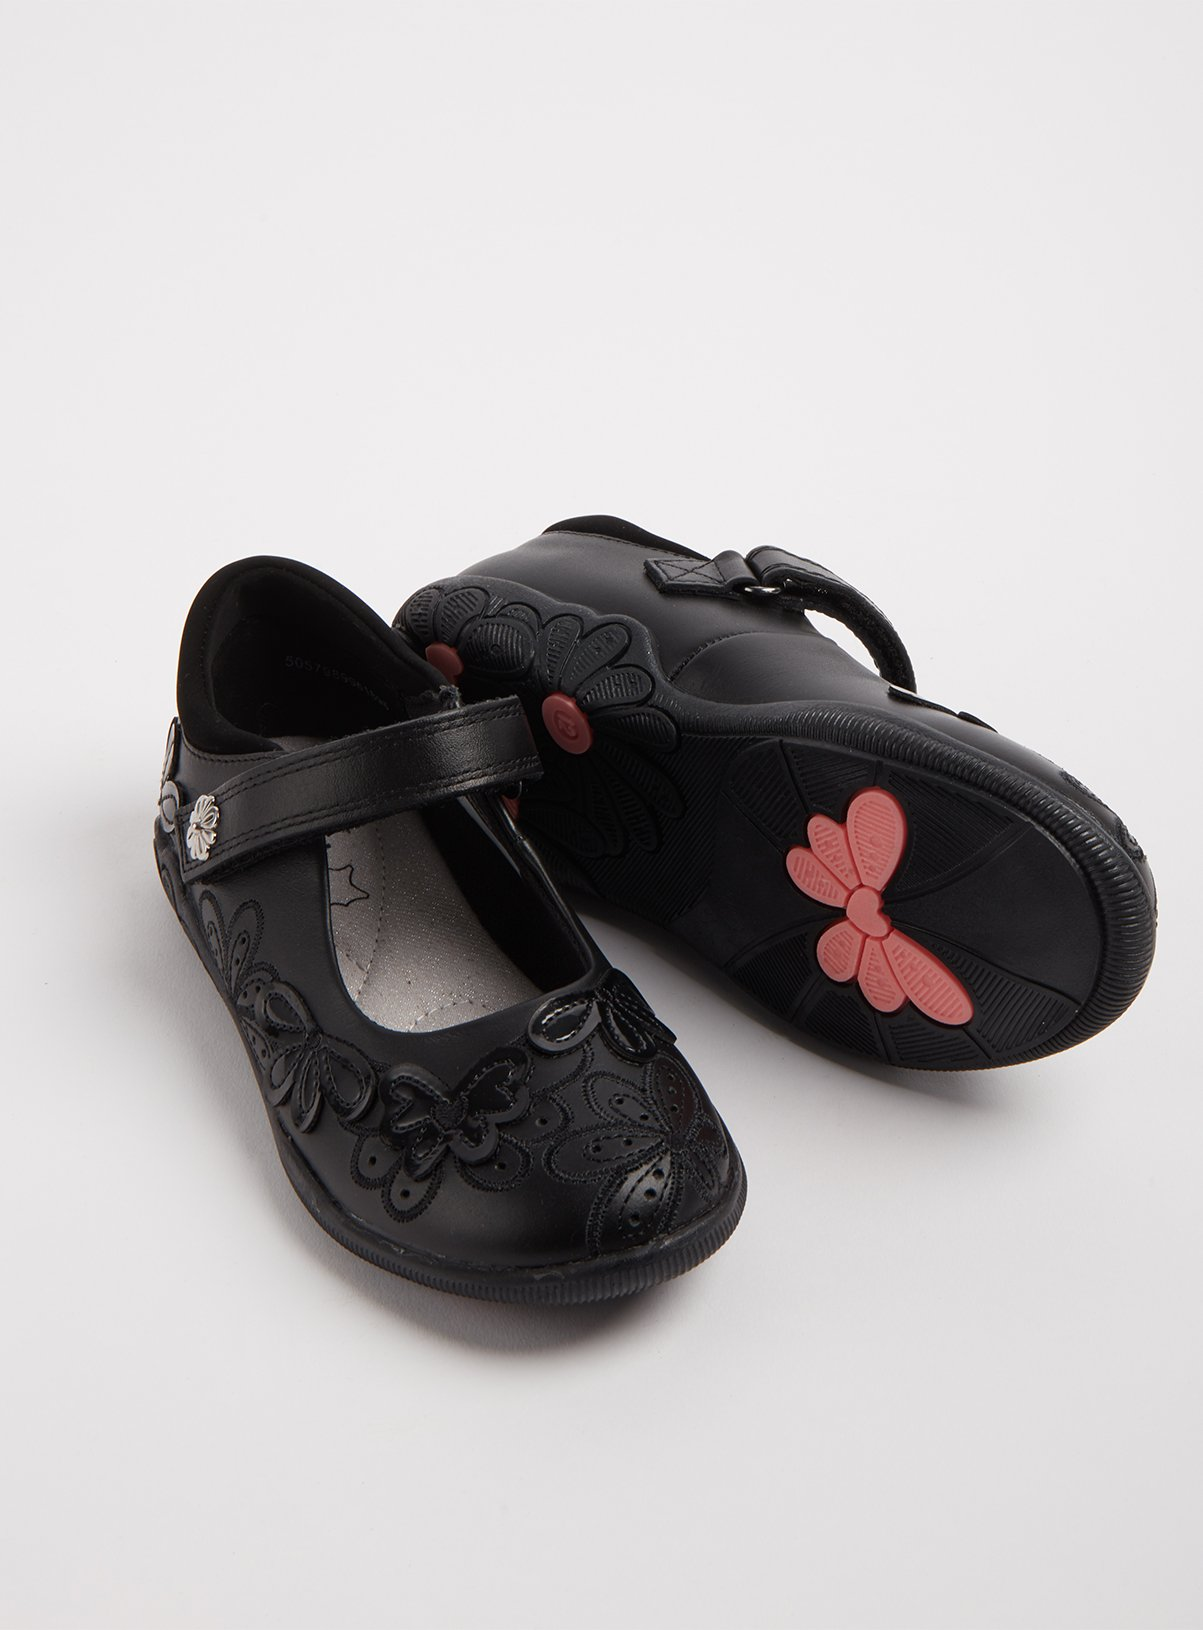 Black Leather Floral One Touch Strap School Shoes - 6 Infant